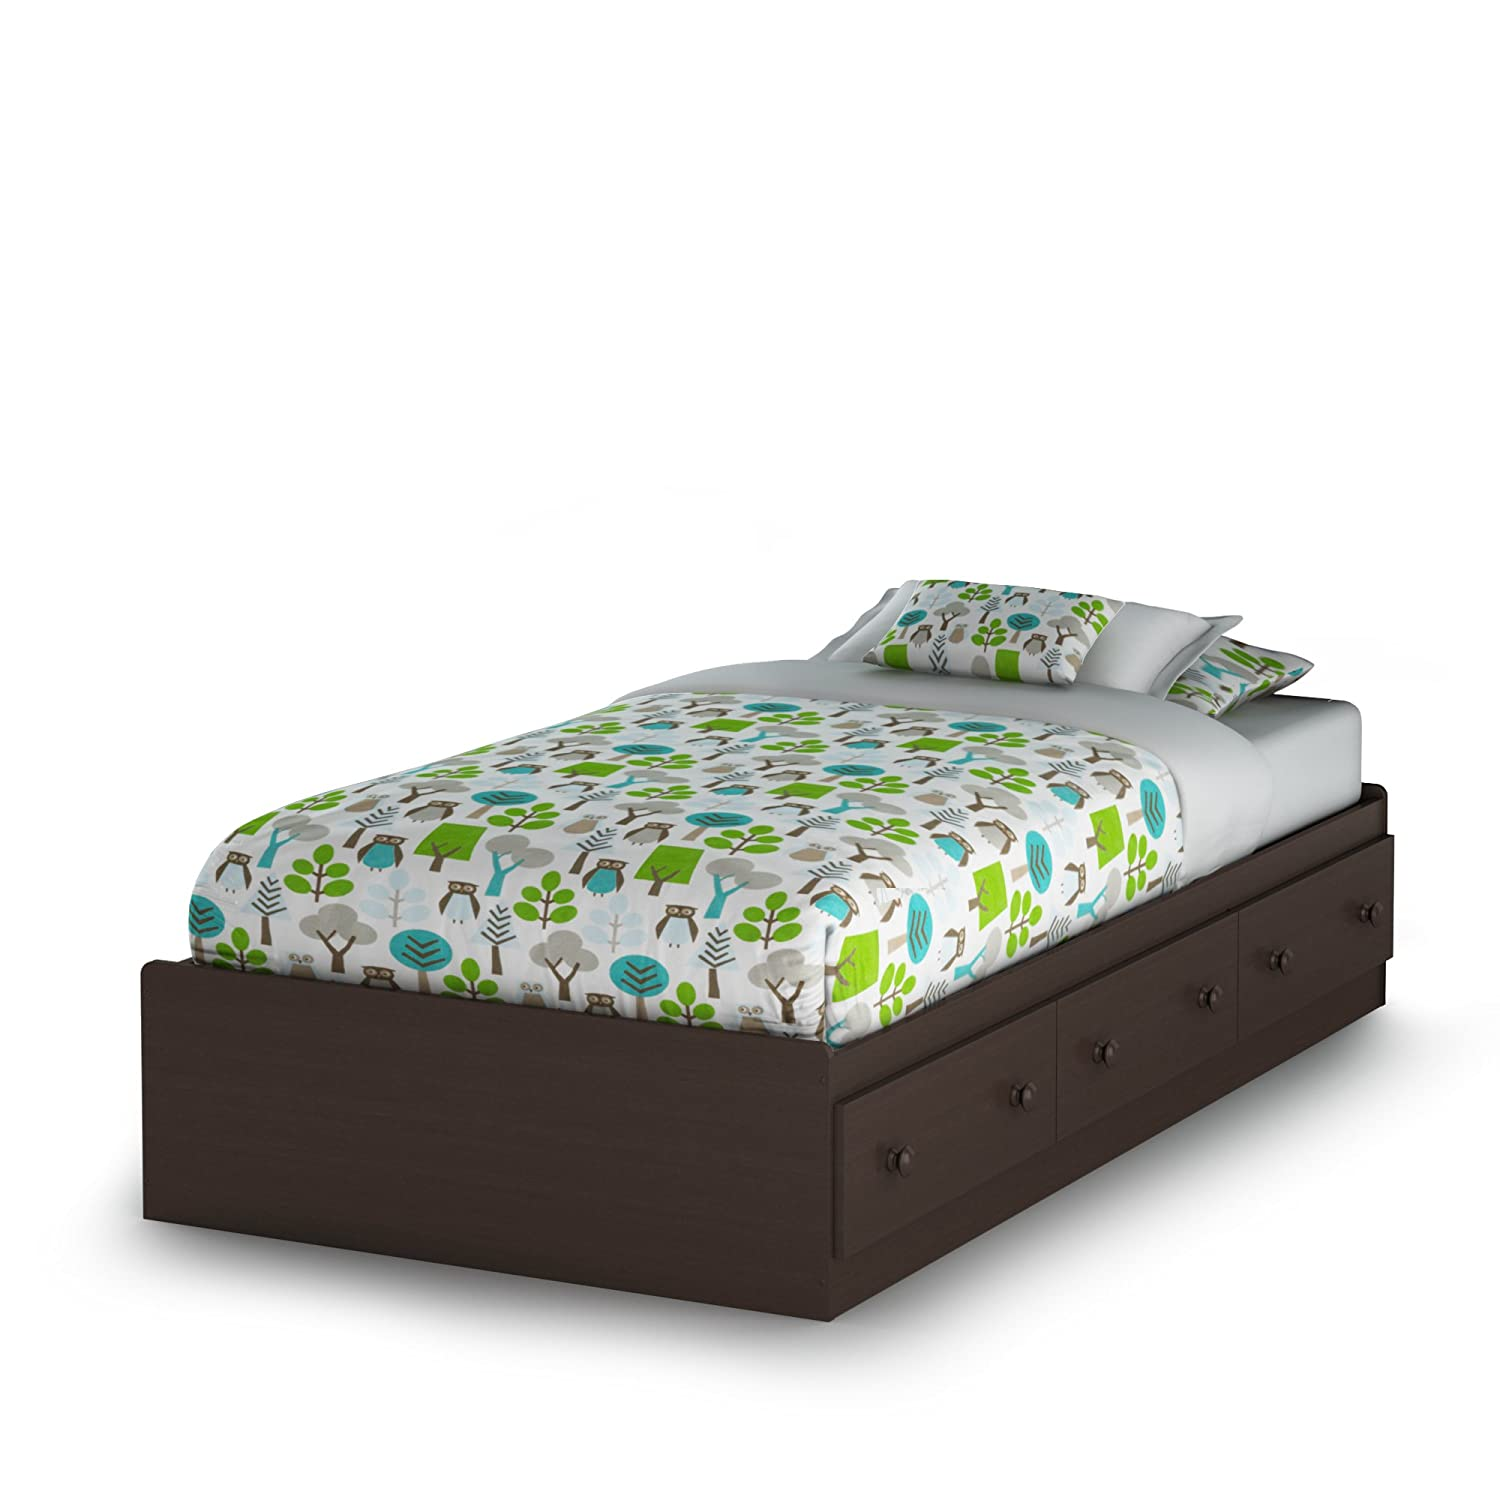 South Shore Furniture Savannah Collection, Twin Bed, Espresso 3519A1